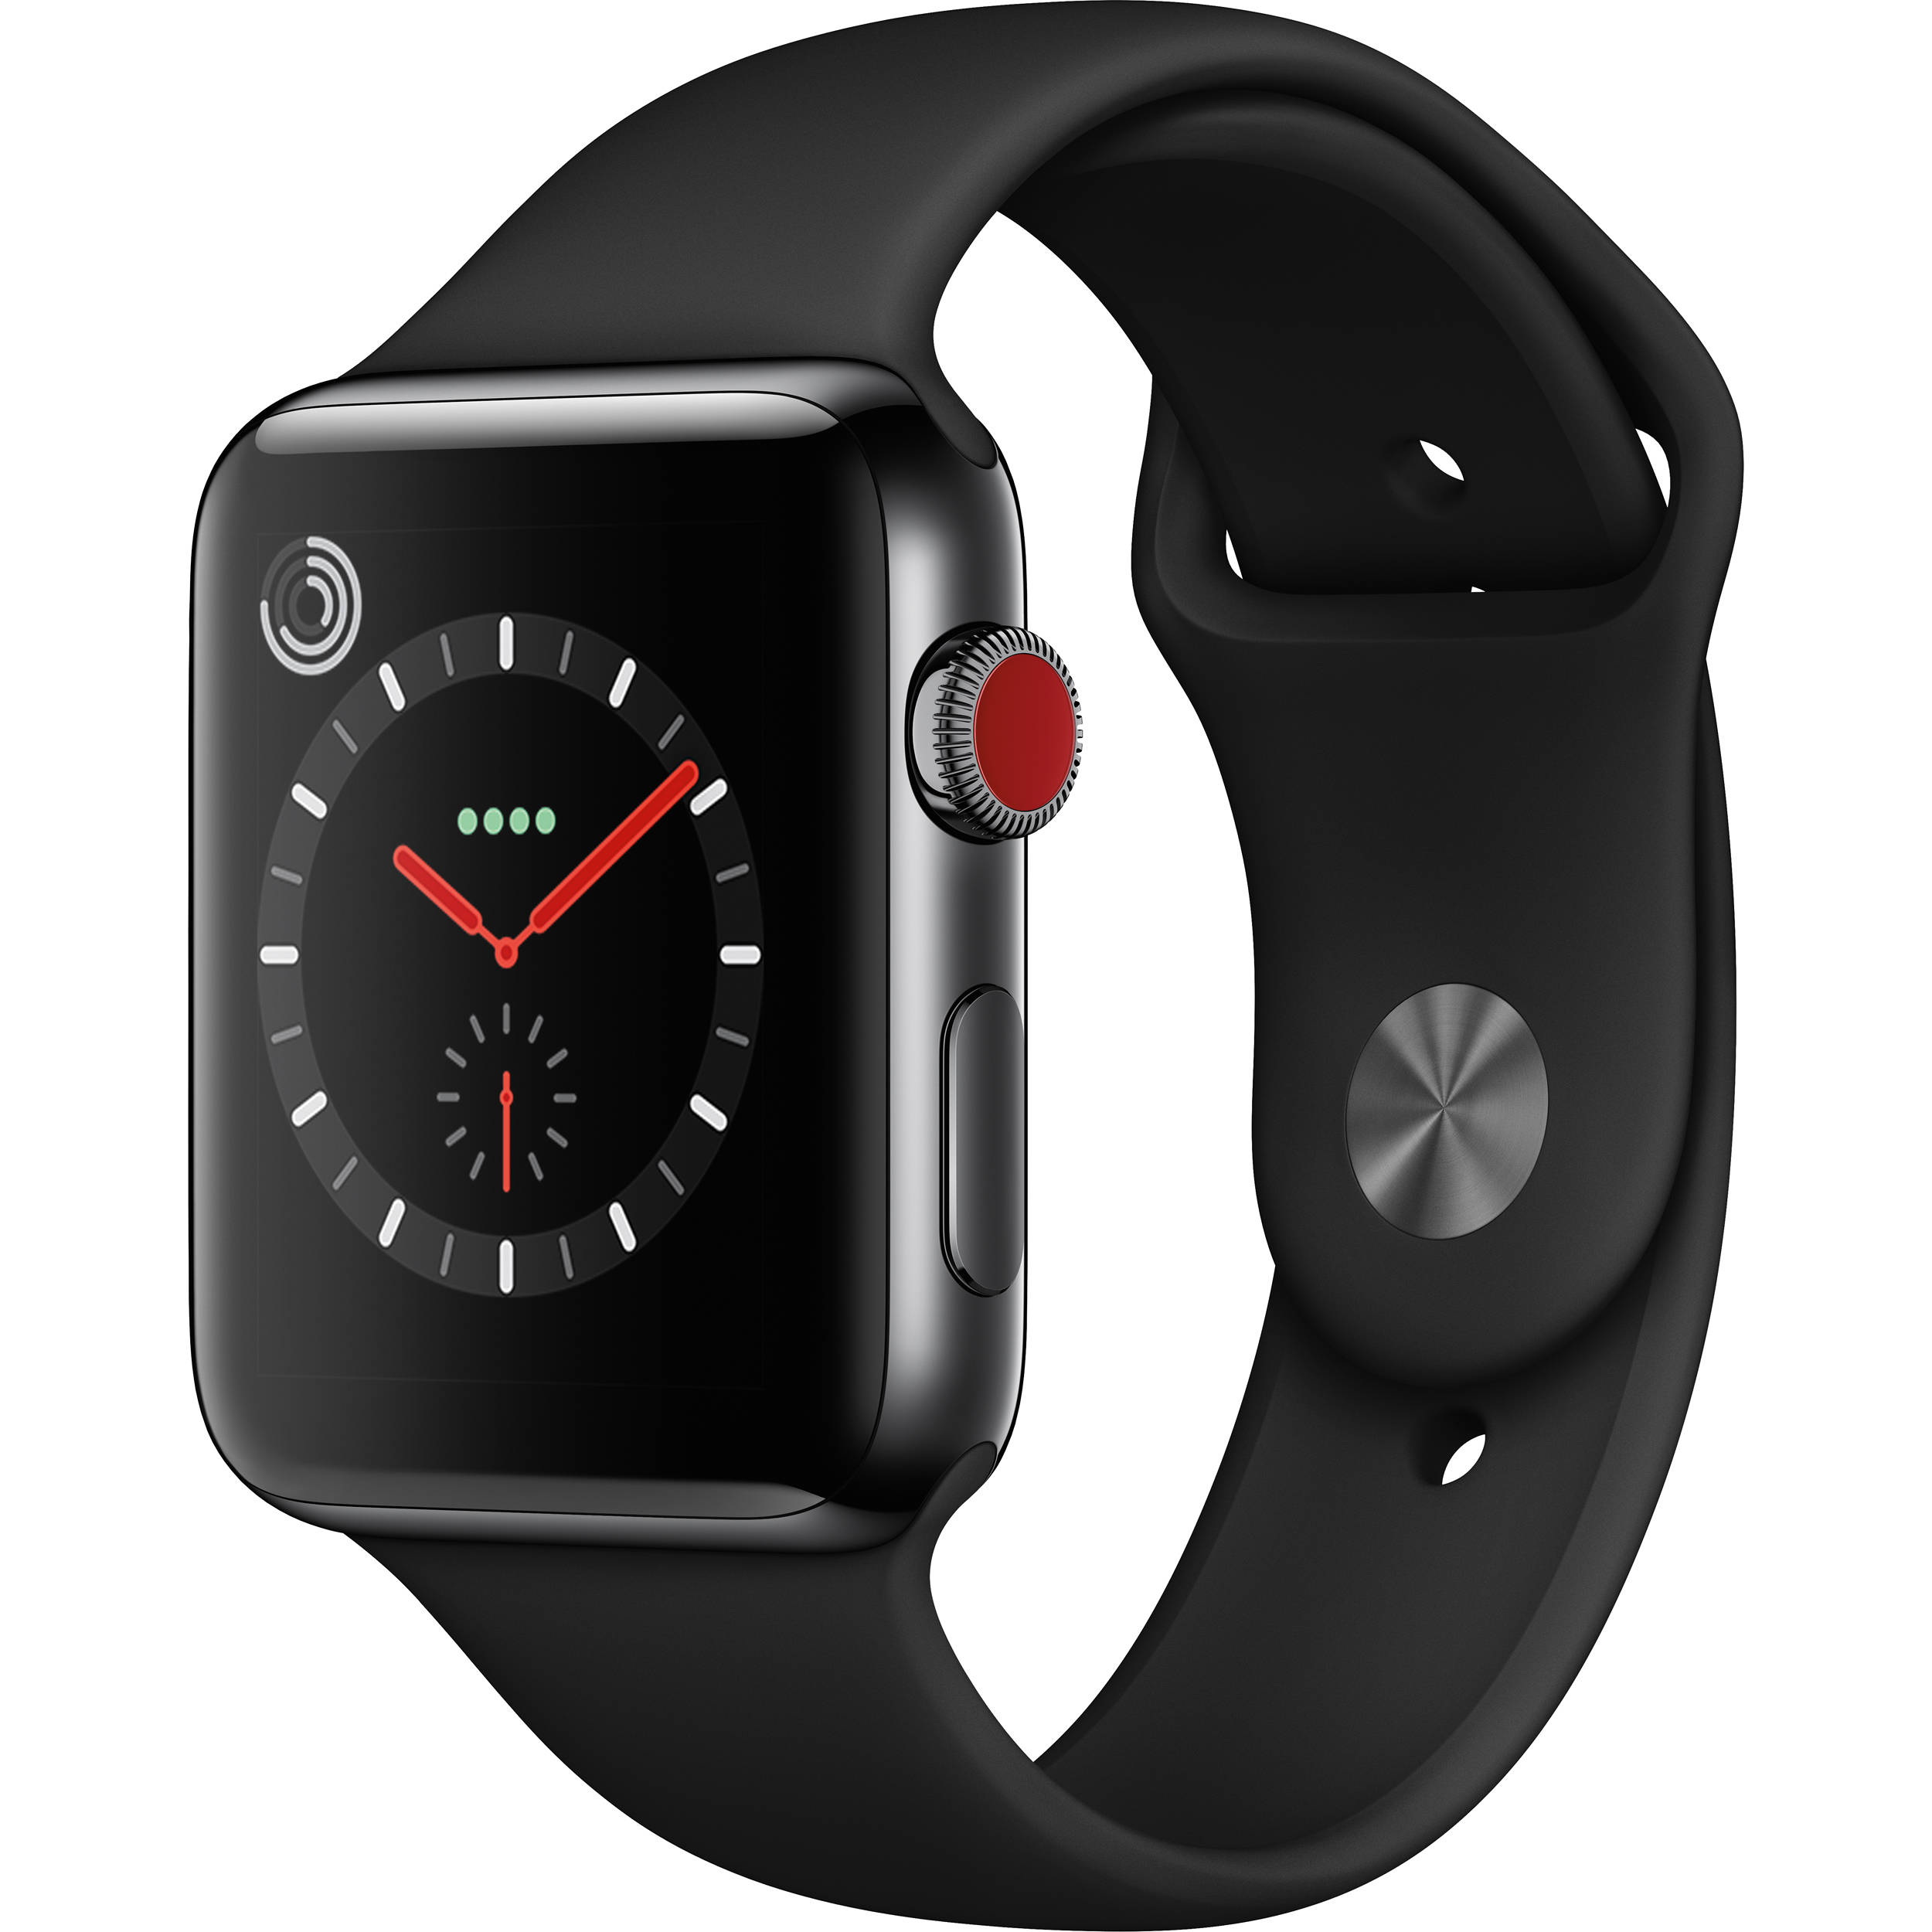 black case silver watches apple watch buy a loop bright crimson with p aluminum nike best site sport gps series unlocked cellular